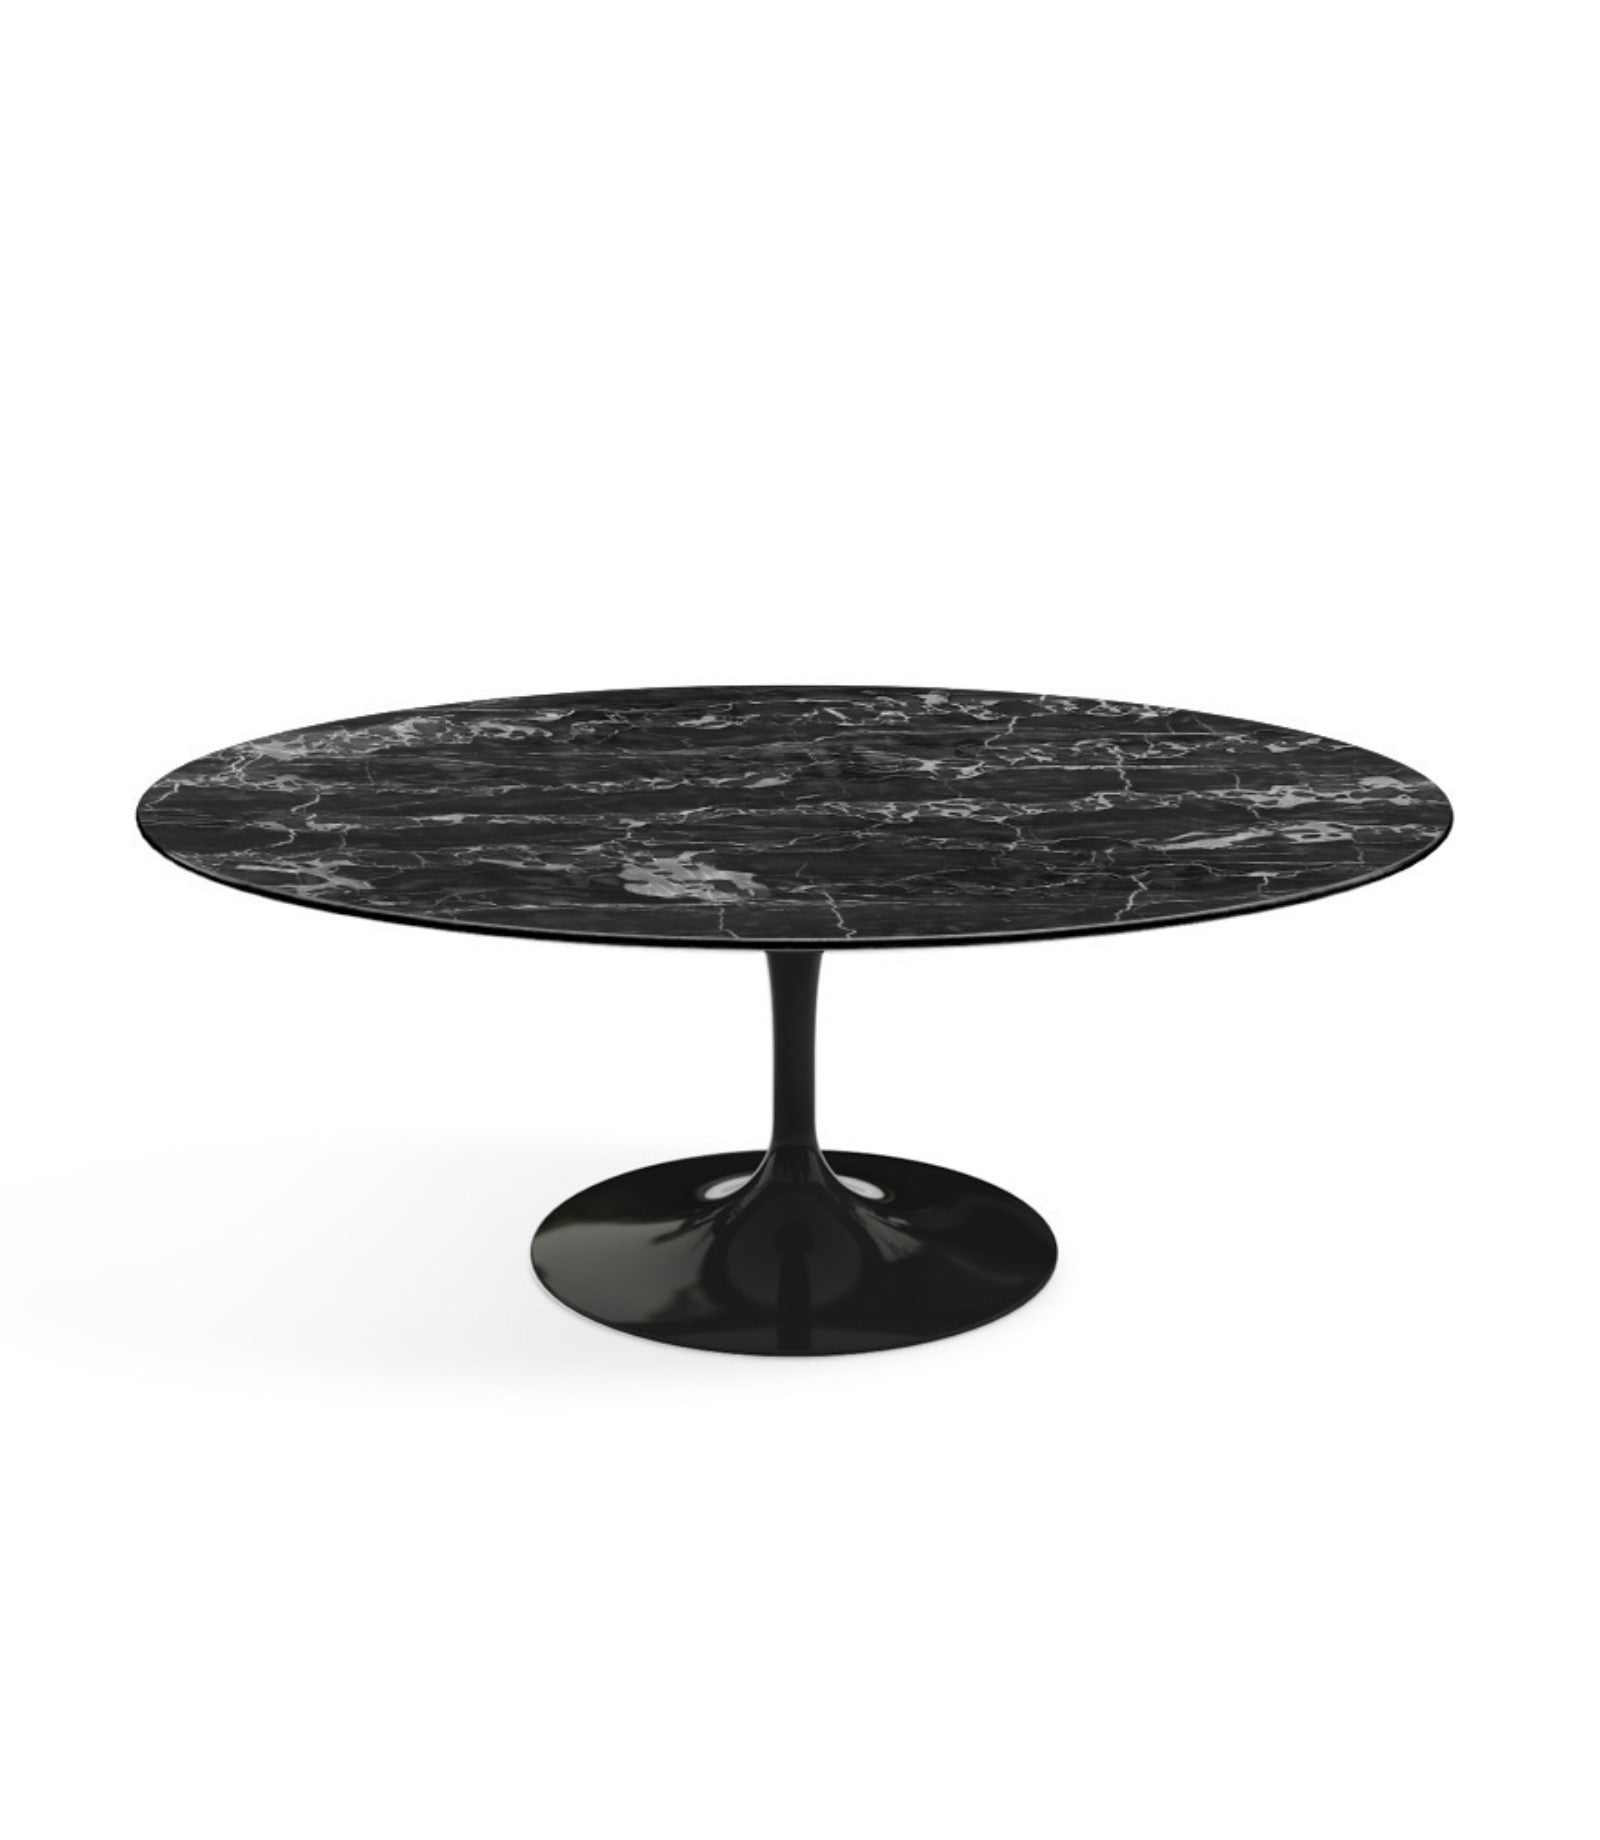 Saarinen Tulip Low Tables Oval